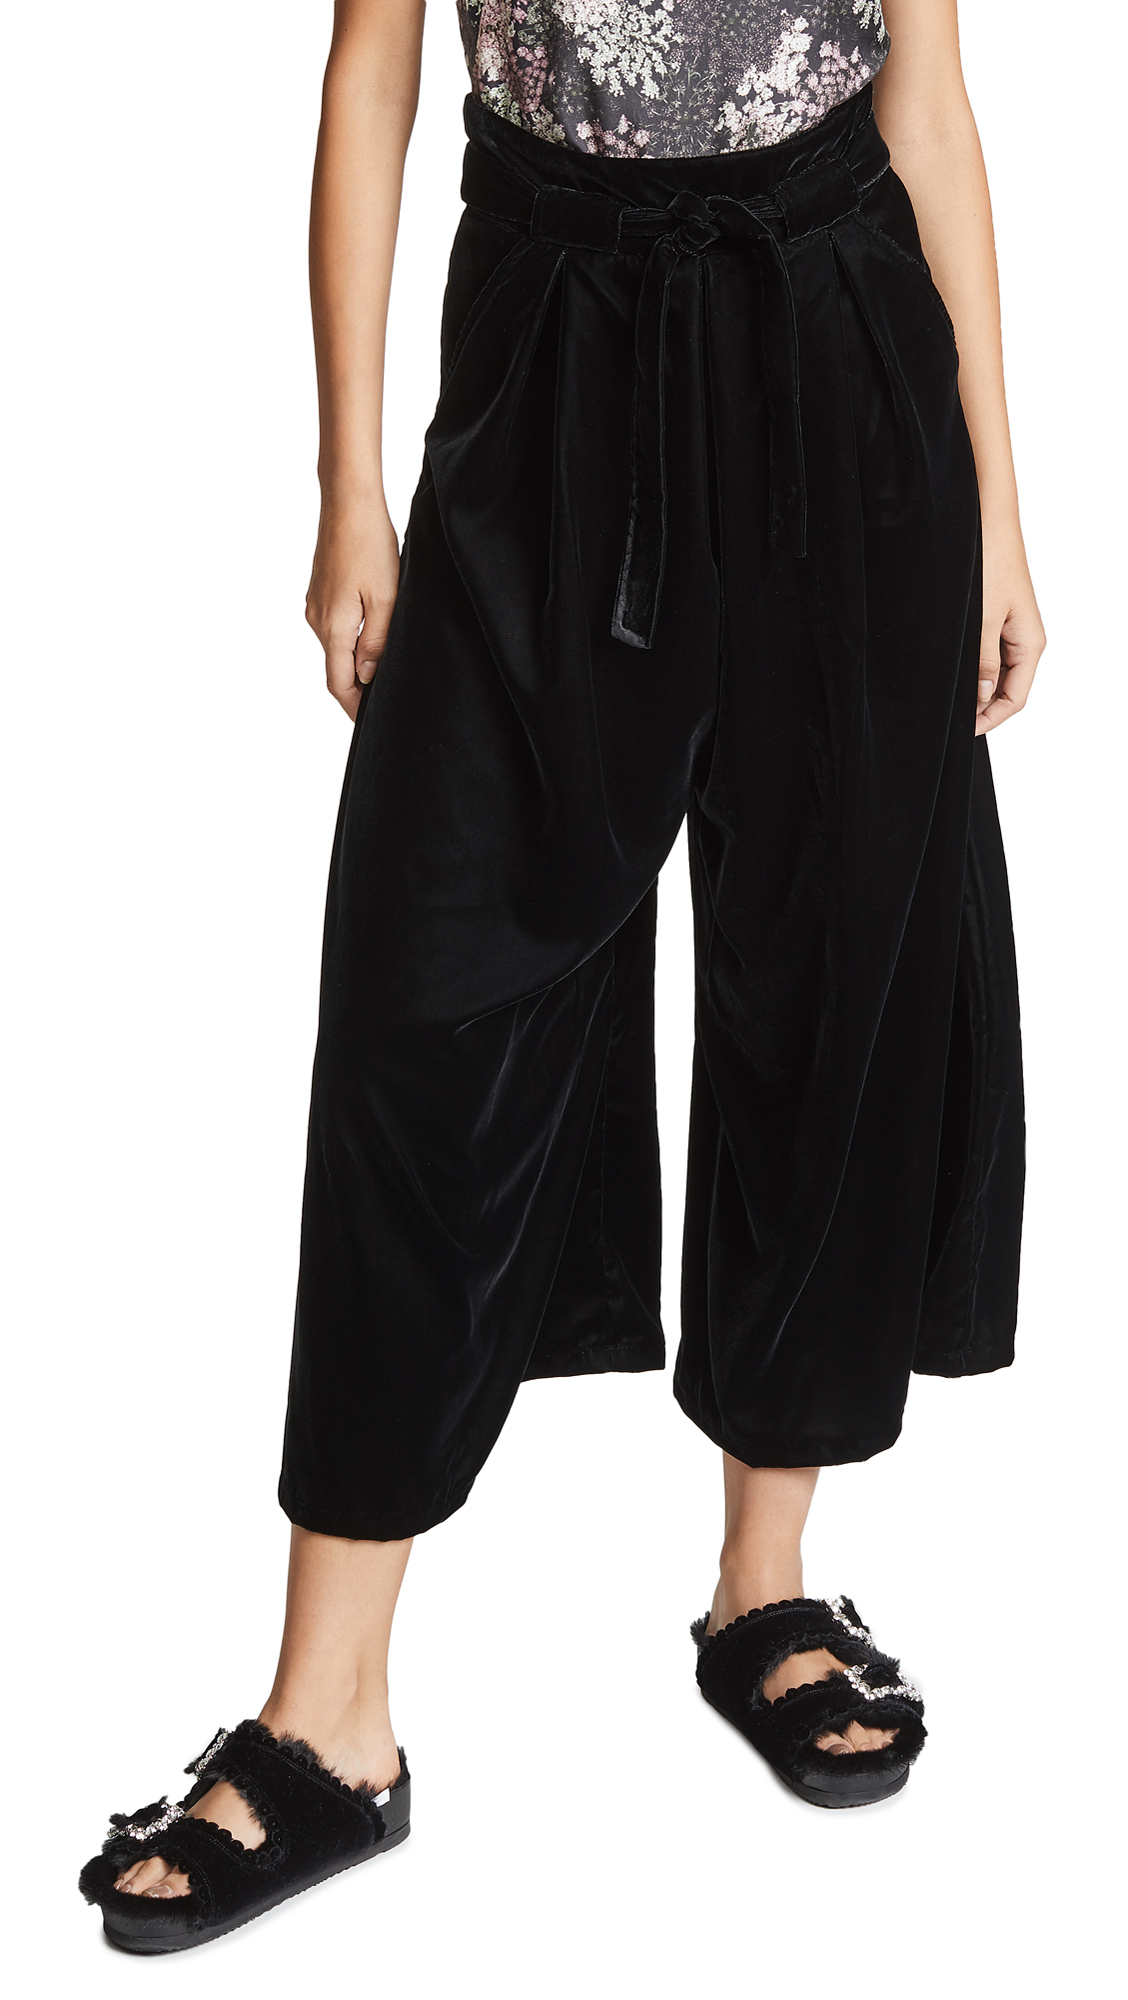 LOUP Suki Pants in Black